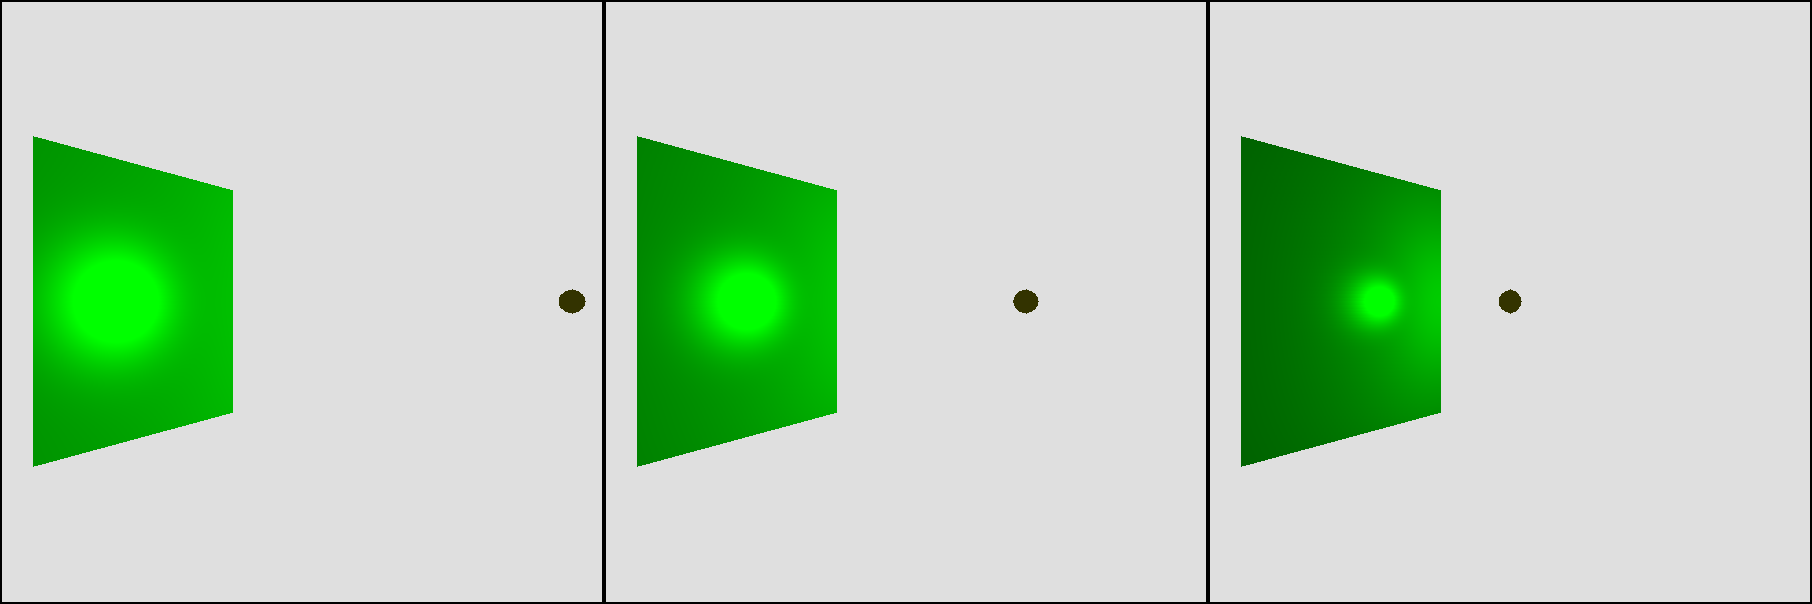 Figure 13-10: The closer the light is to the surface, the brighter and better defined the specular highlight looks.